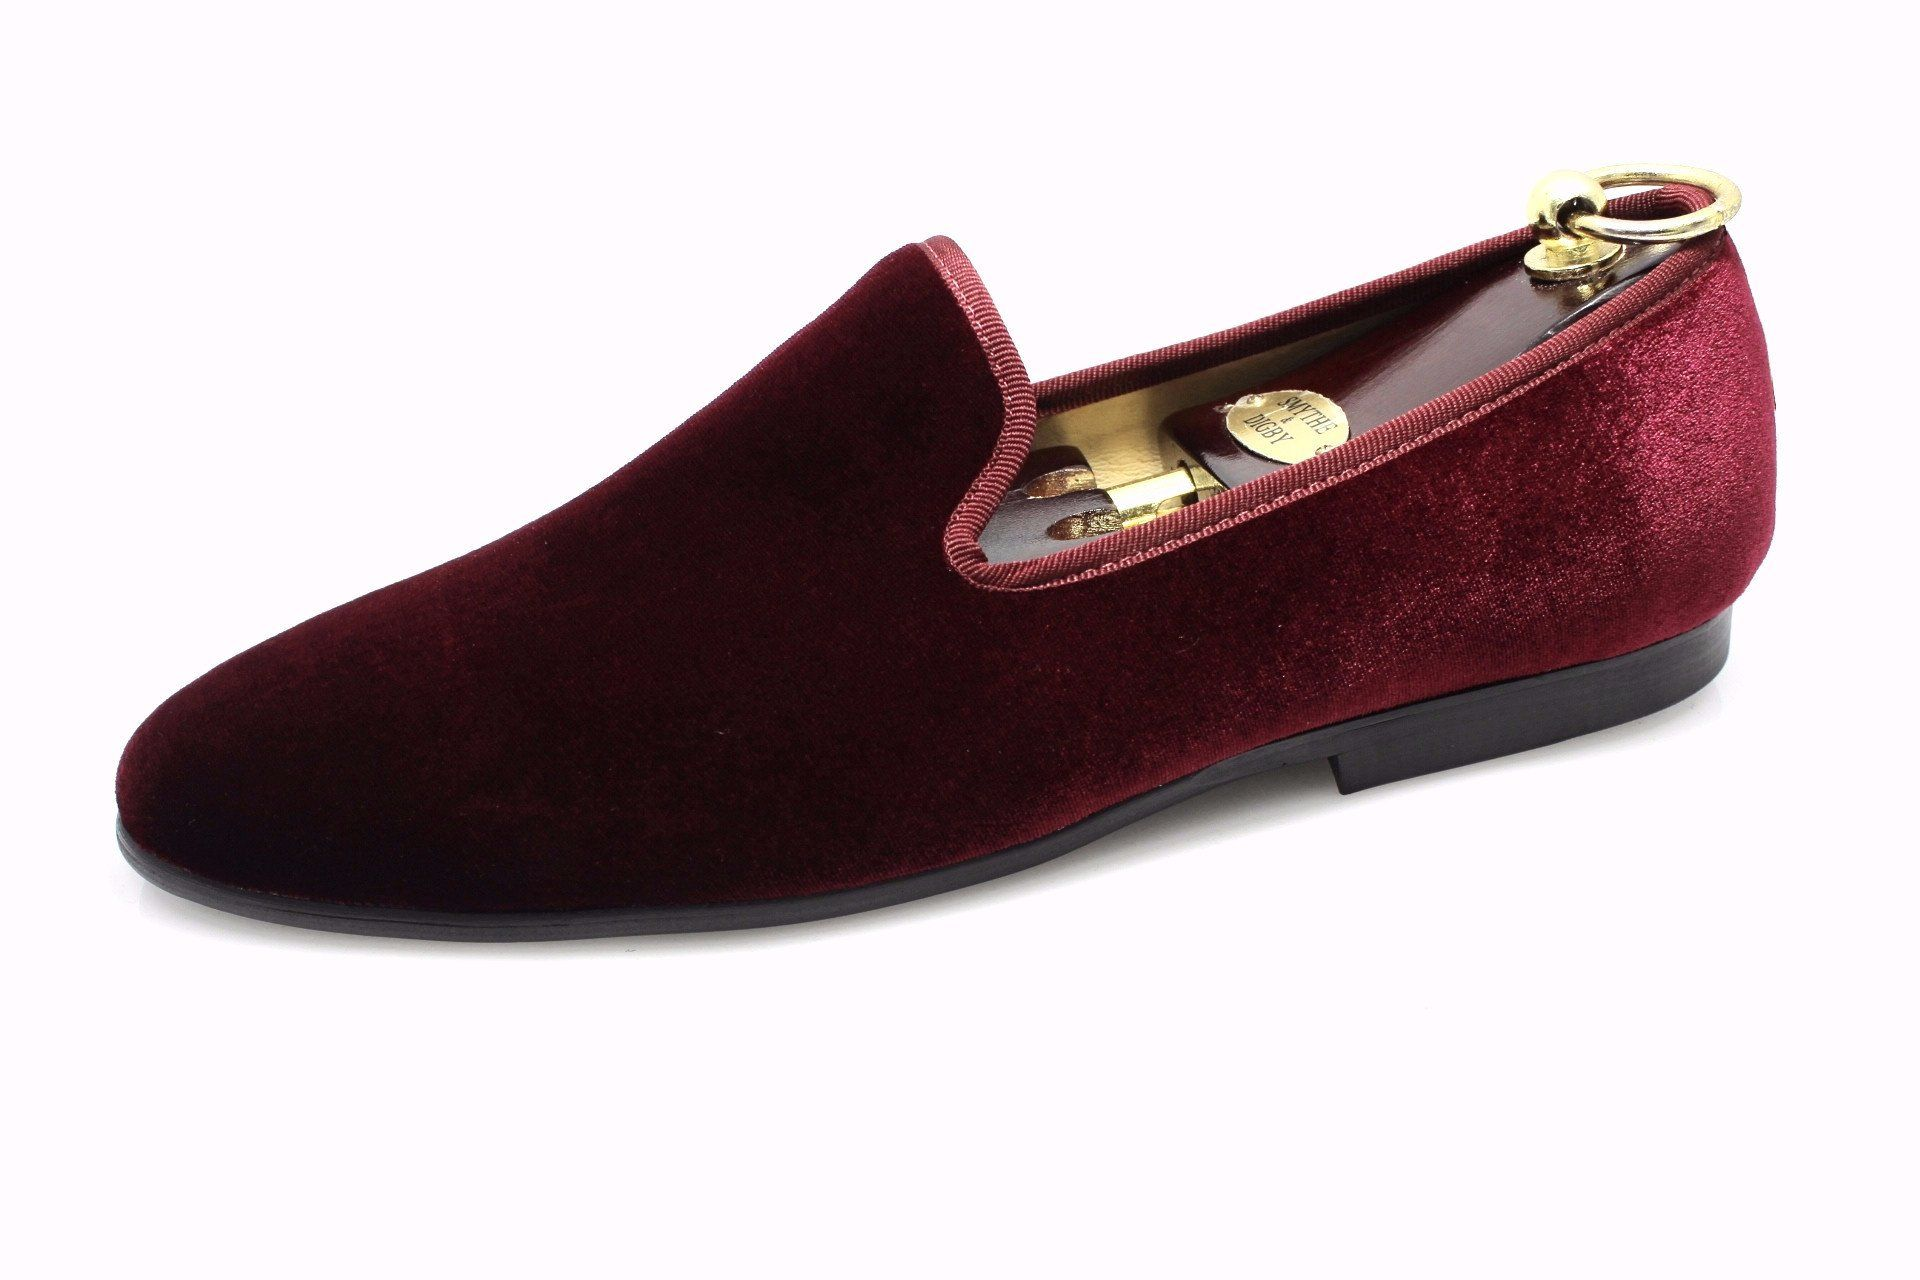 85c8c62f6d7 Smythe   Digby Men s Albert Slipper Leather Velvet Loafer Burgundy ...